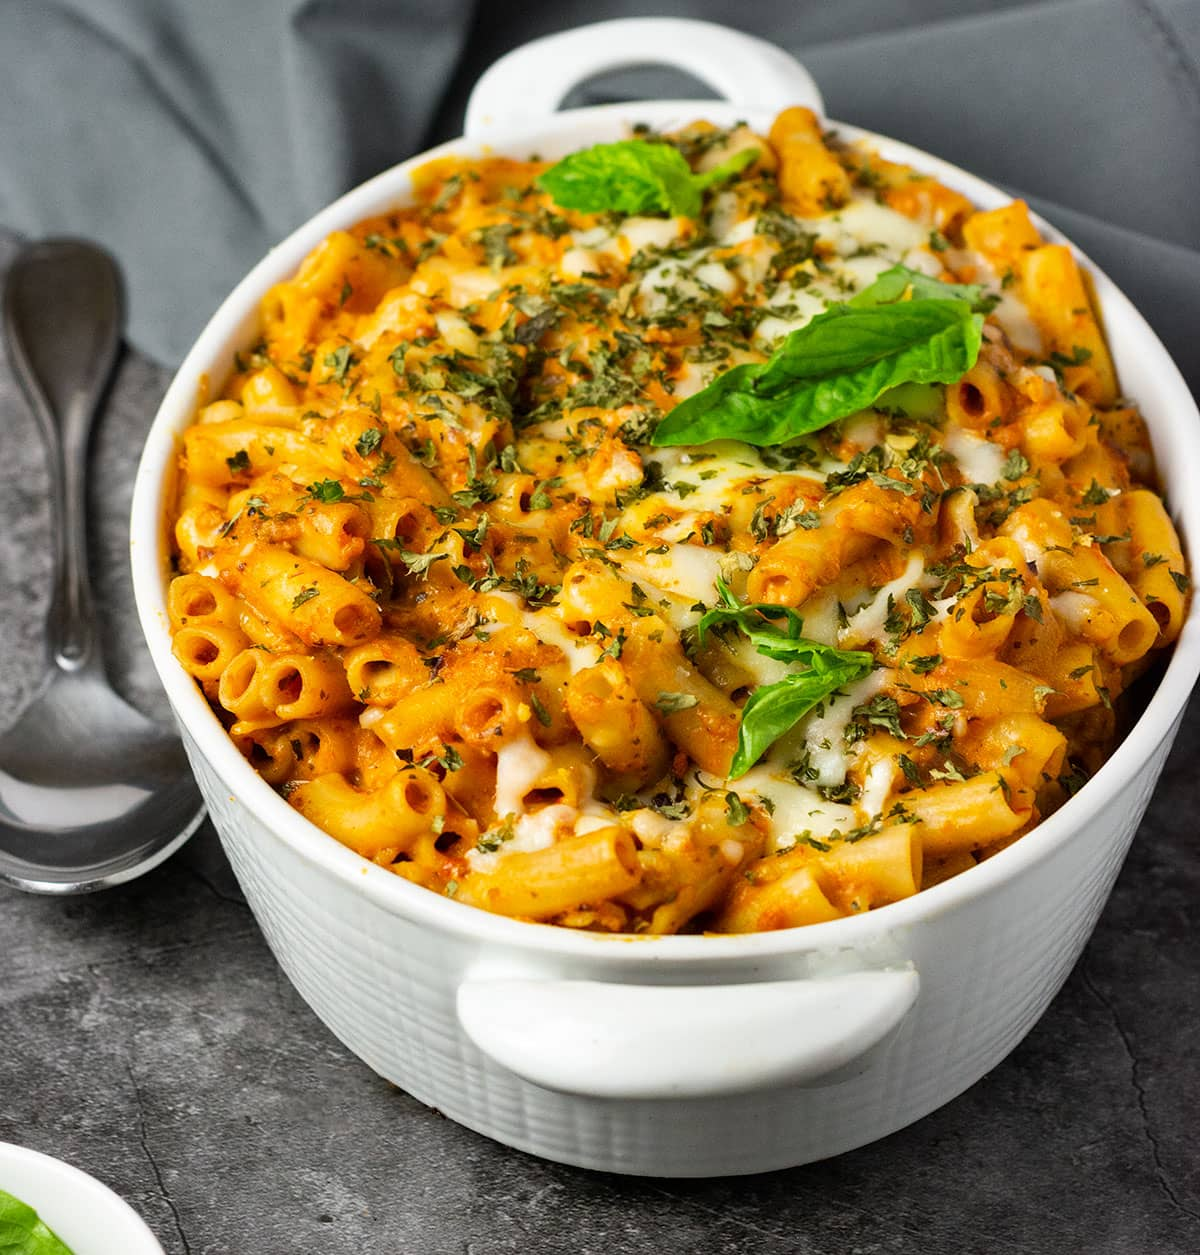 vegan baked ziti straight on image on a grey background in a white pan